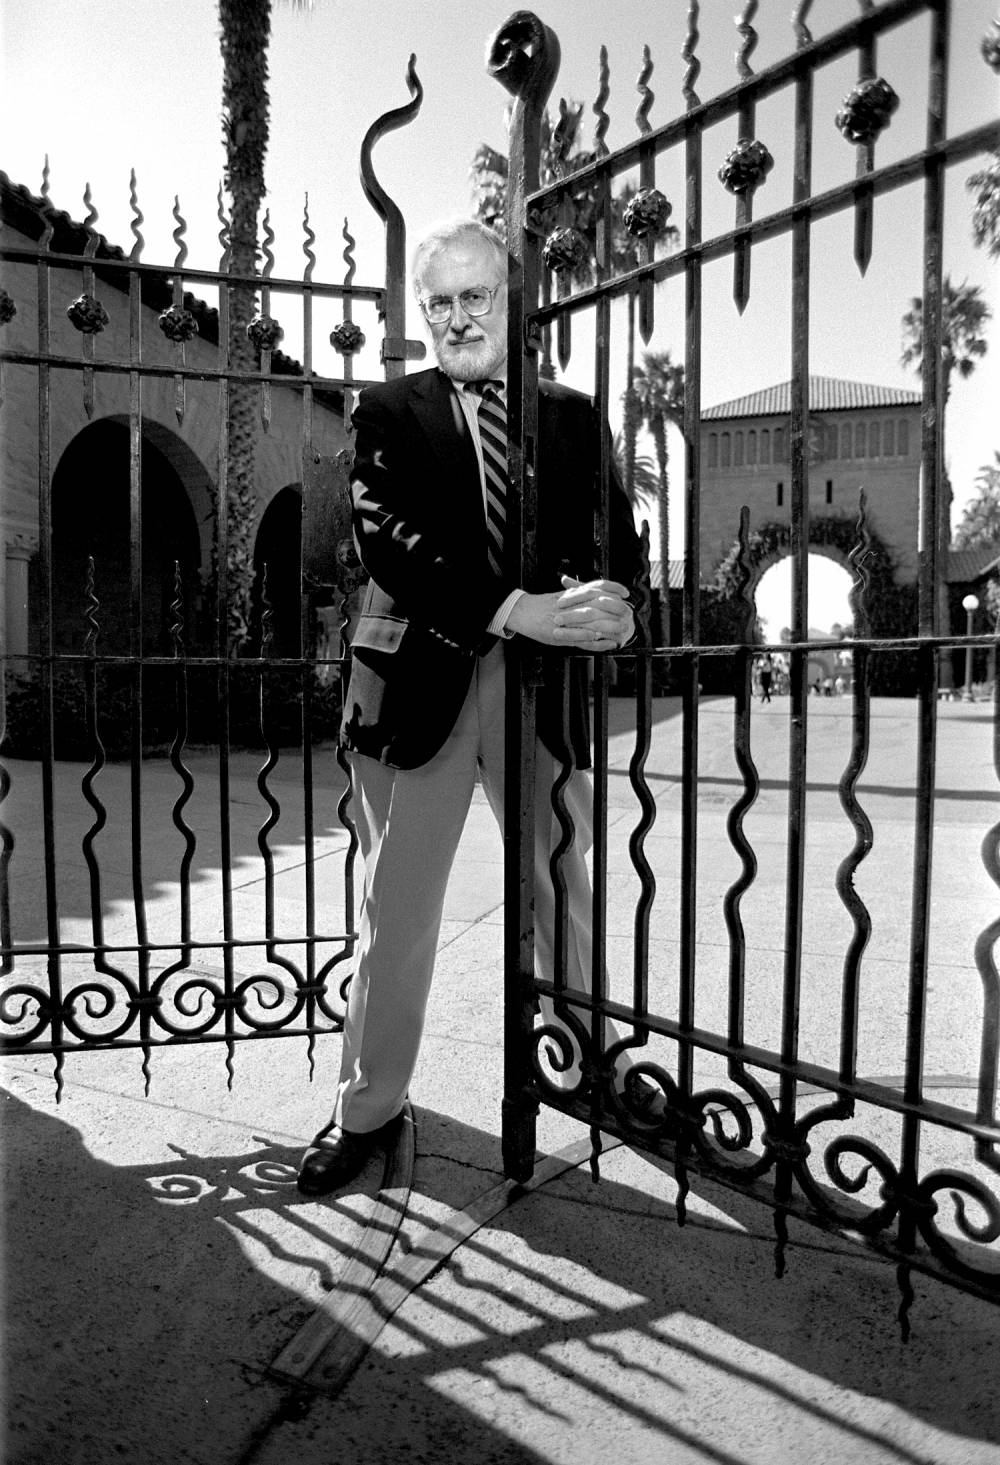 9/27/1996 Professor of English John L'Heureux at one of the iron gates in the Quad.